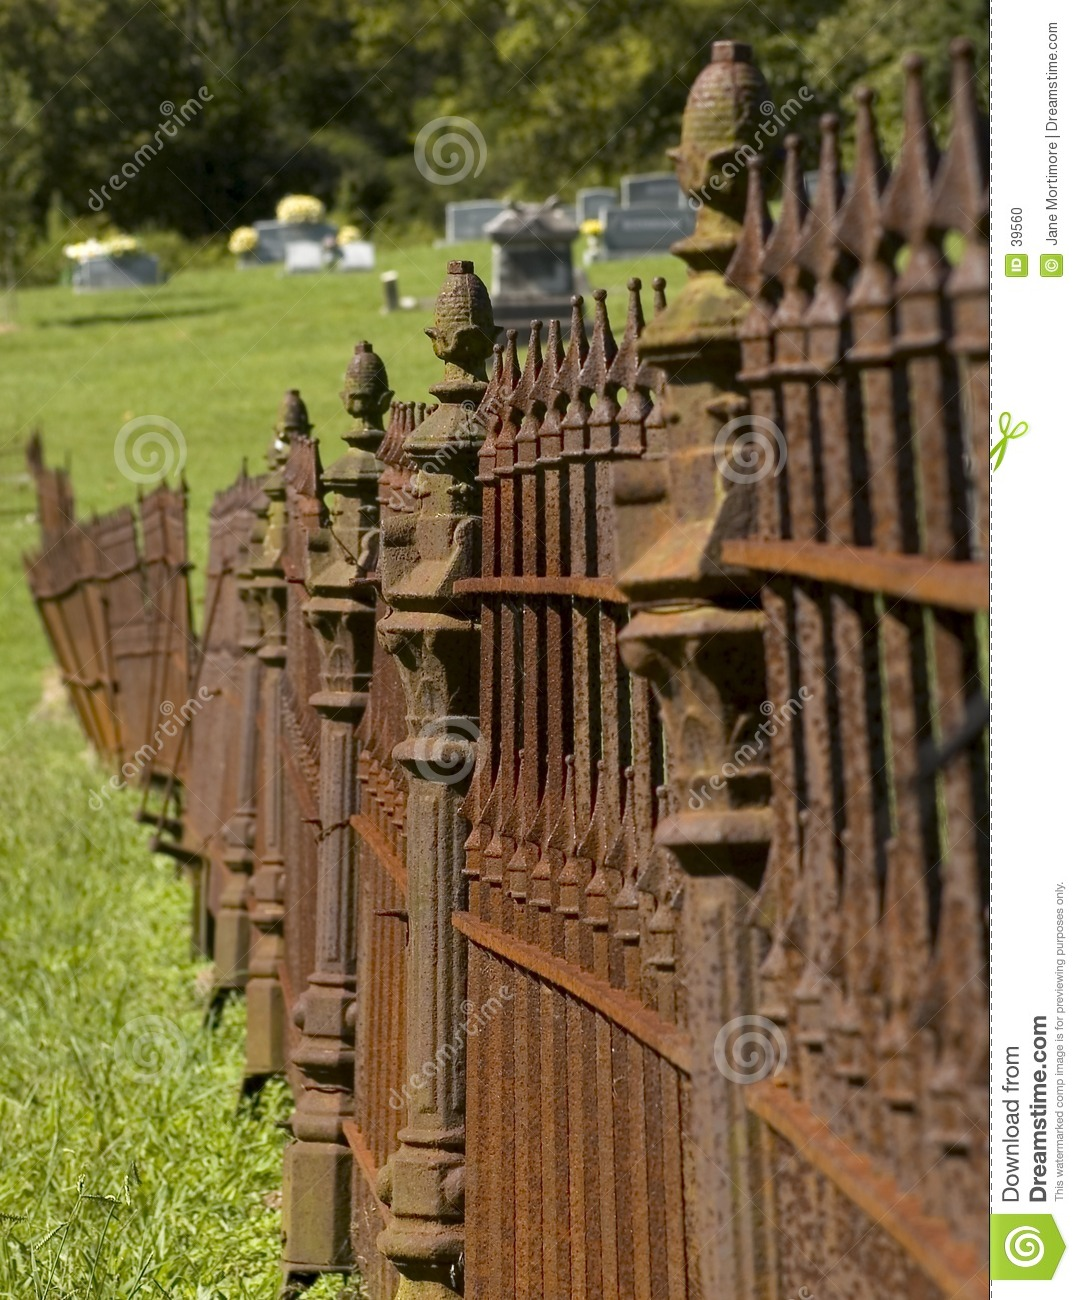 Rusty Iron Cemetary Fence Stock Photo Image Of Rusting